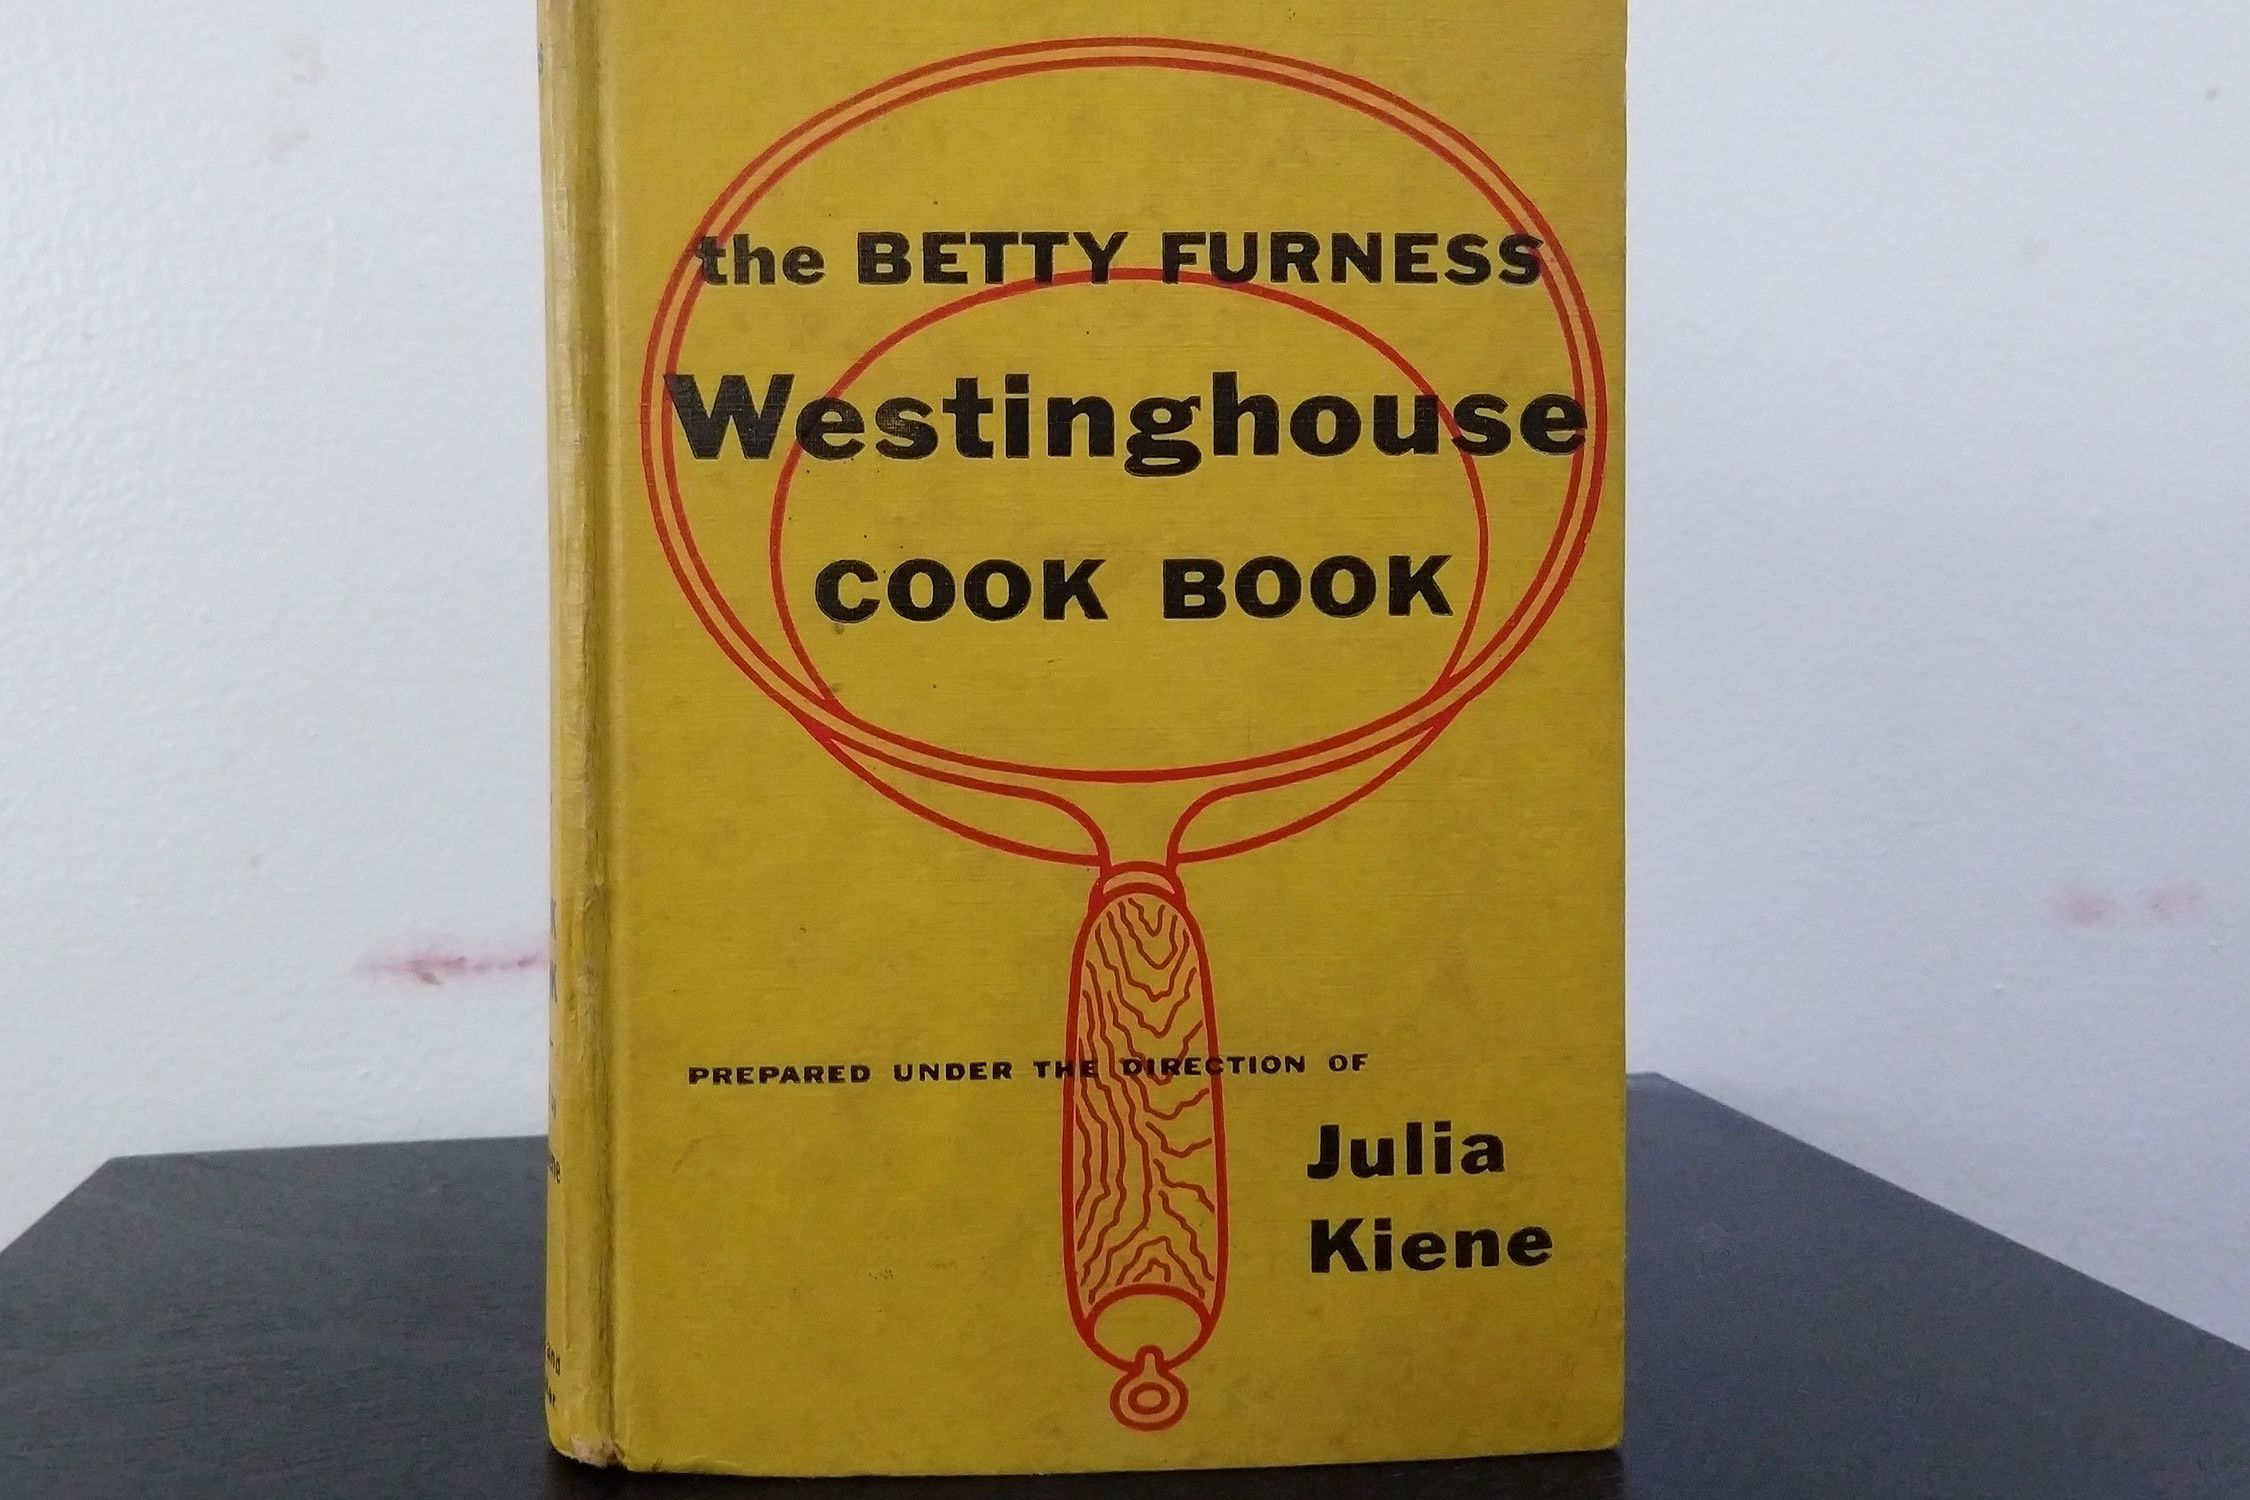 My Family Bible Is 'The Betty Furness Westinghouse Cook Book'